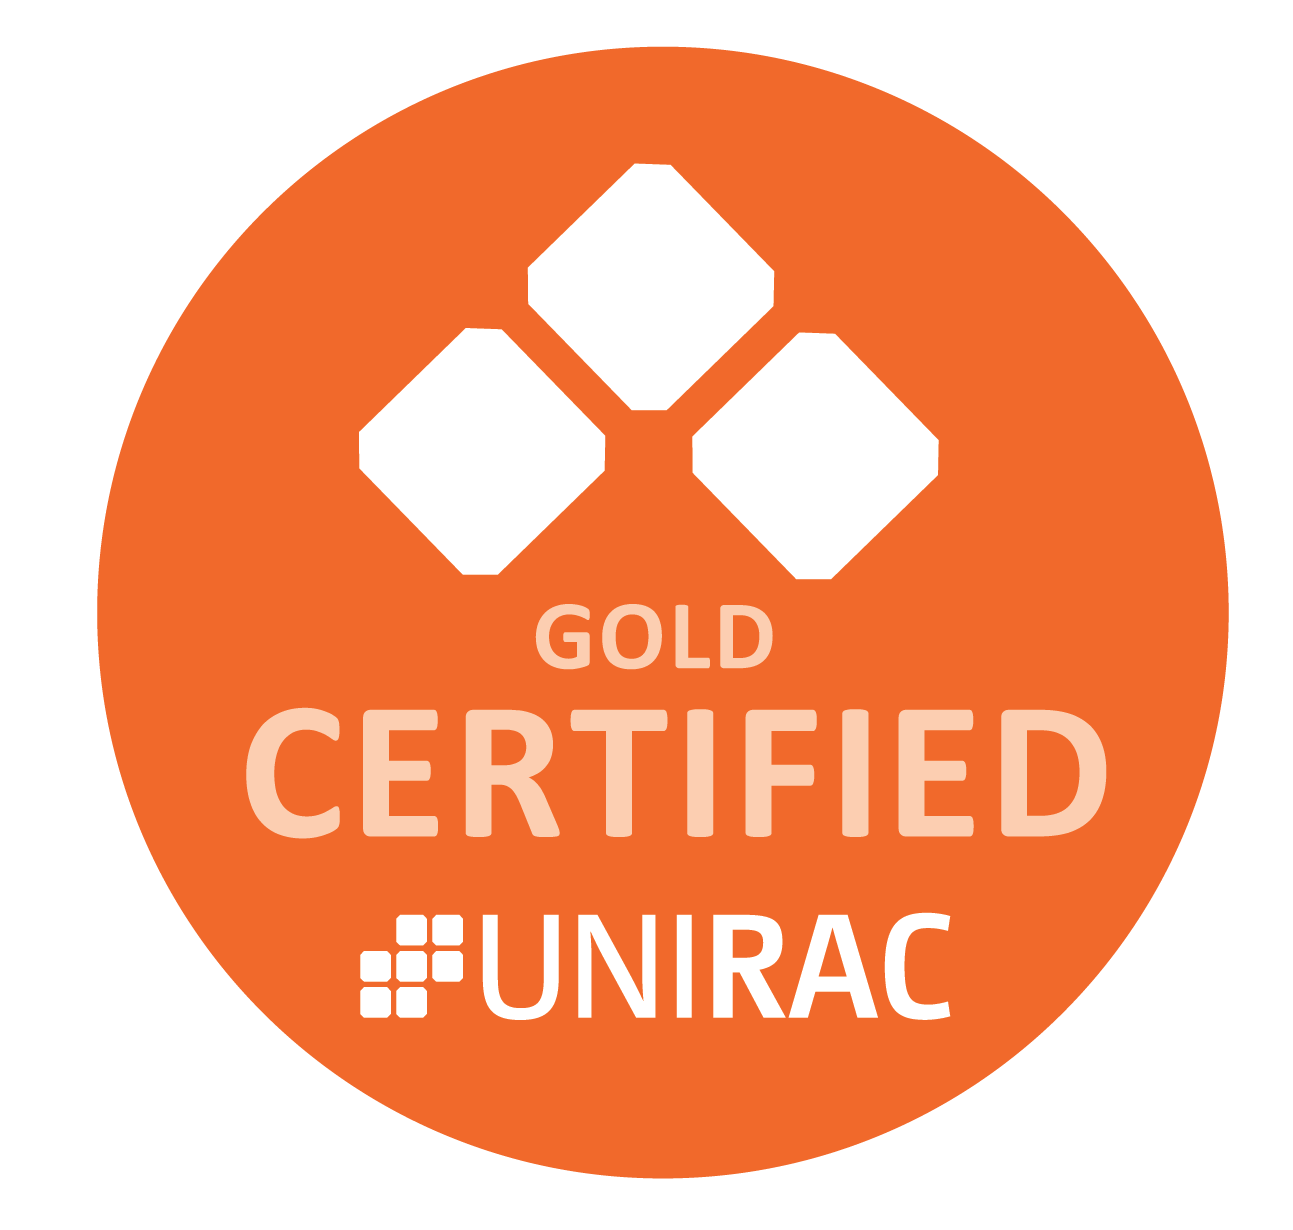 Certified Gold